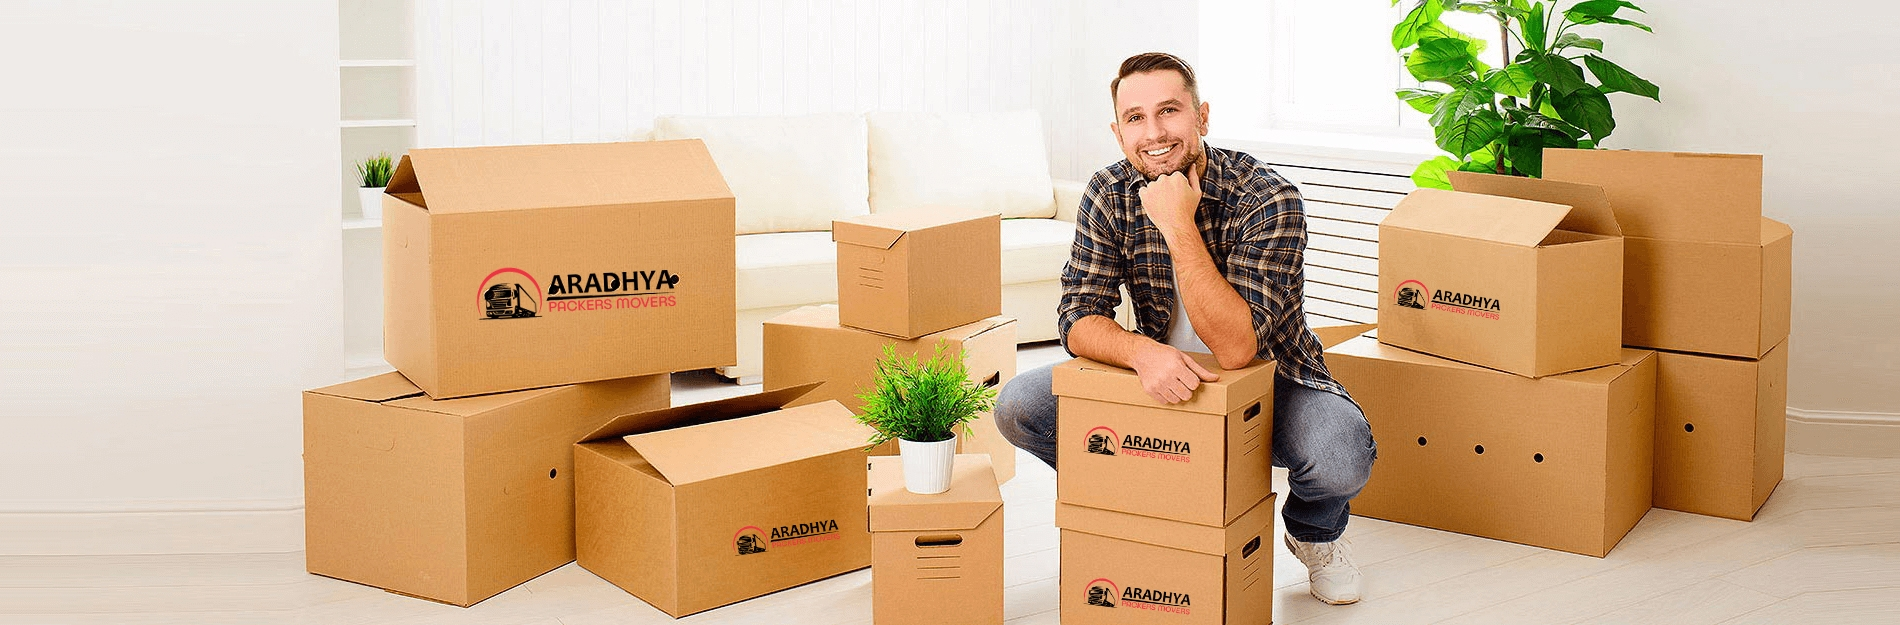 Aradhya Packers And Movers (@aradhyapackersmovers) Cover Image